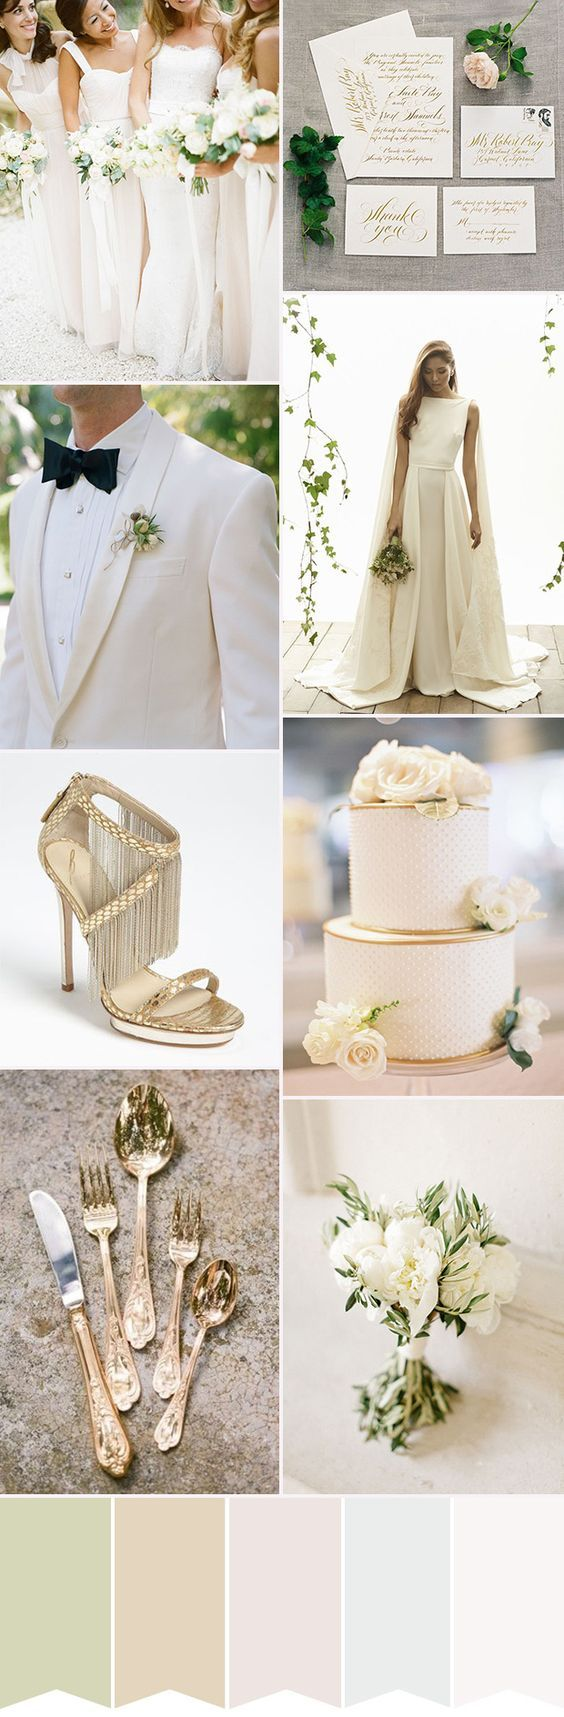 25 best Champagne Weddings images on Pinterest | Weddings, Champagne ...